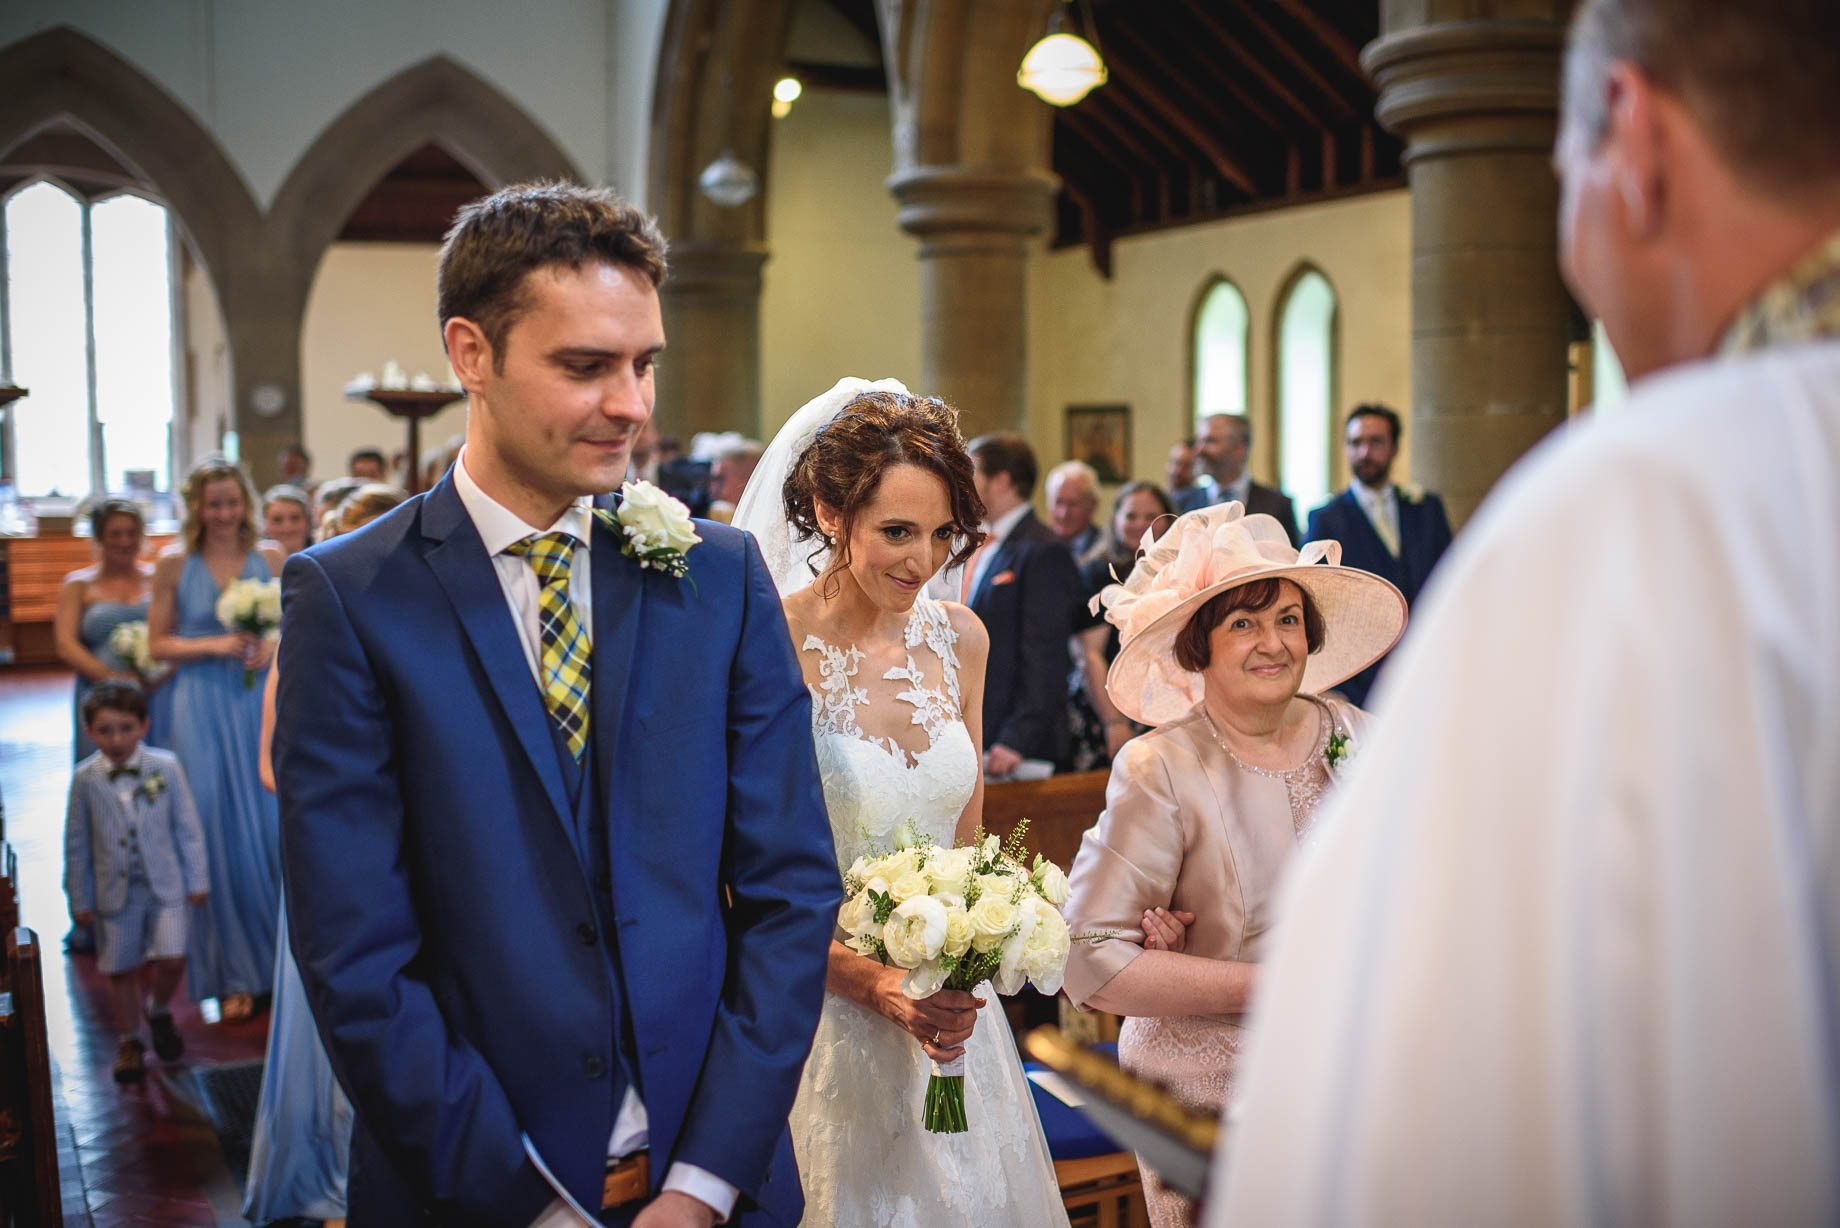 Hertfordshire wedding photography - Sarah and Stephen by Guy Collier Photography (57 of 161)